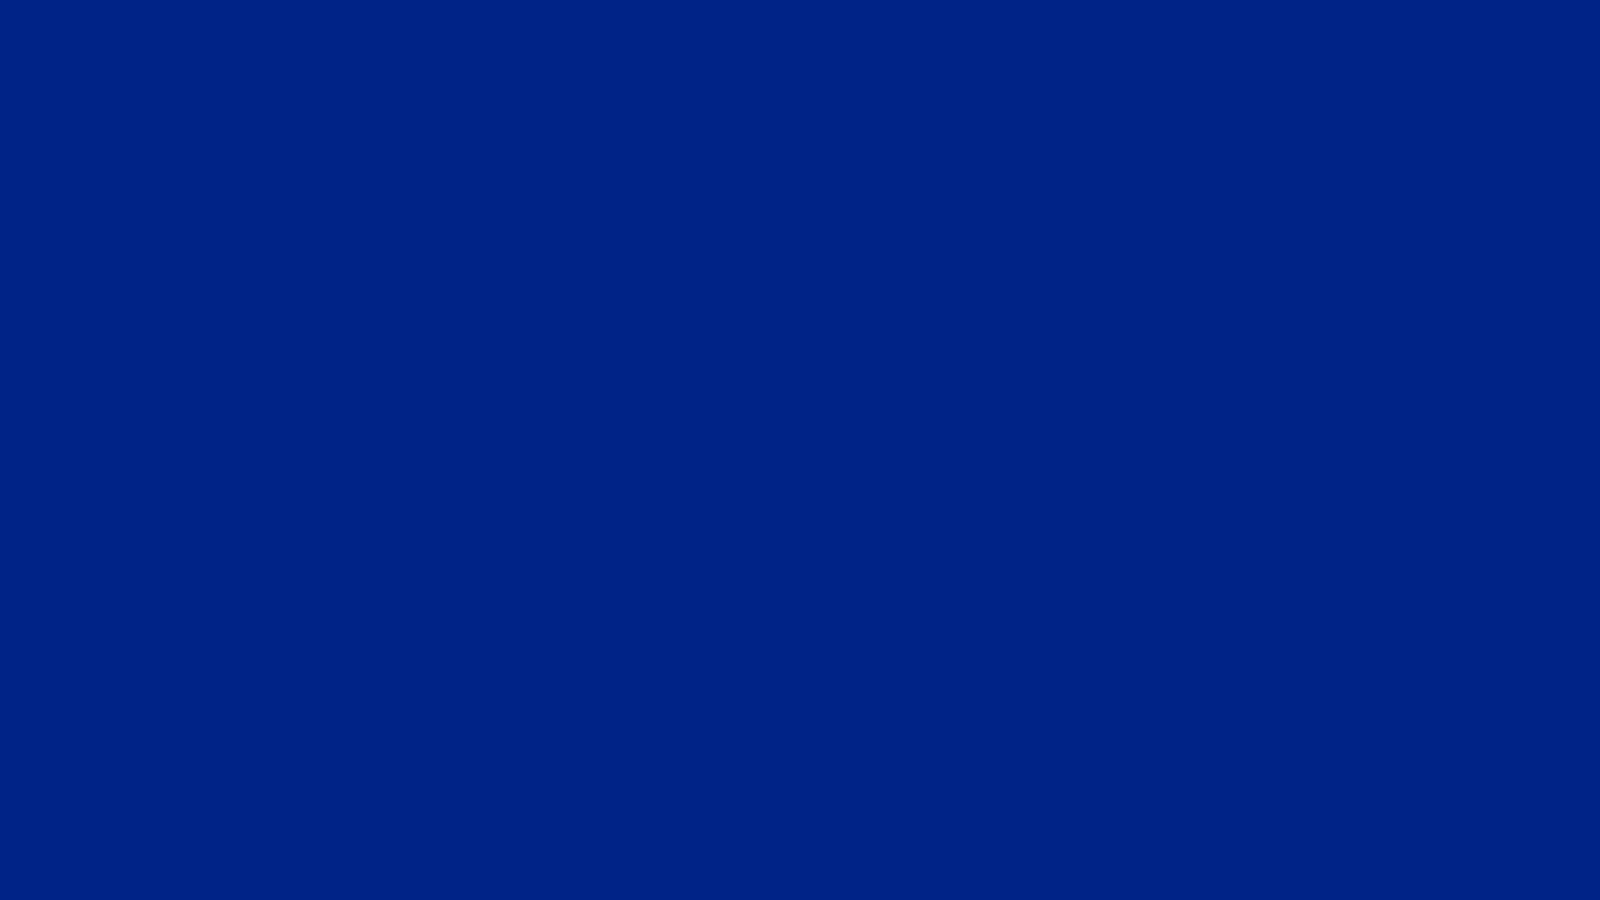 1600x900 Resolution Blue Solid Color Background